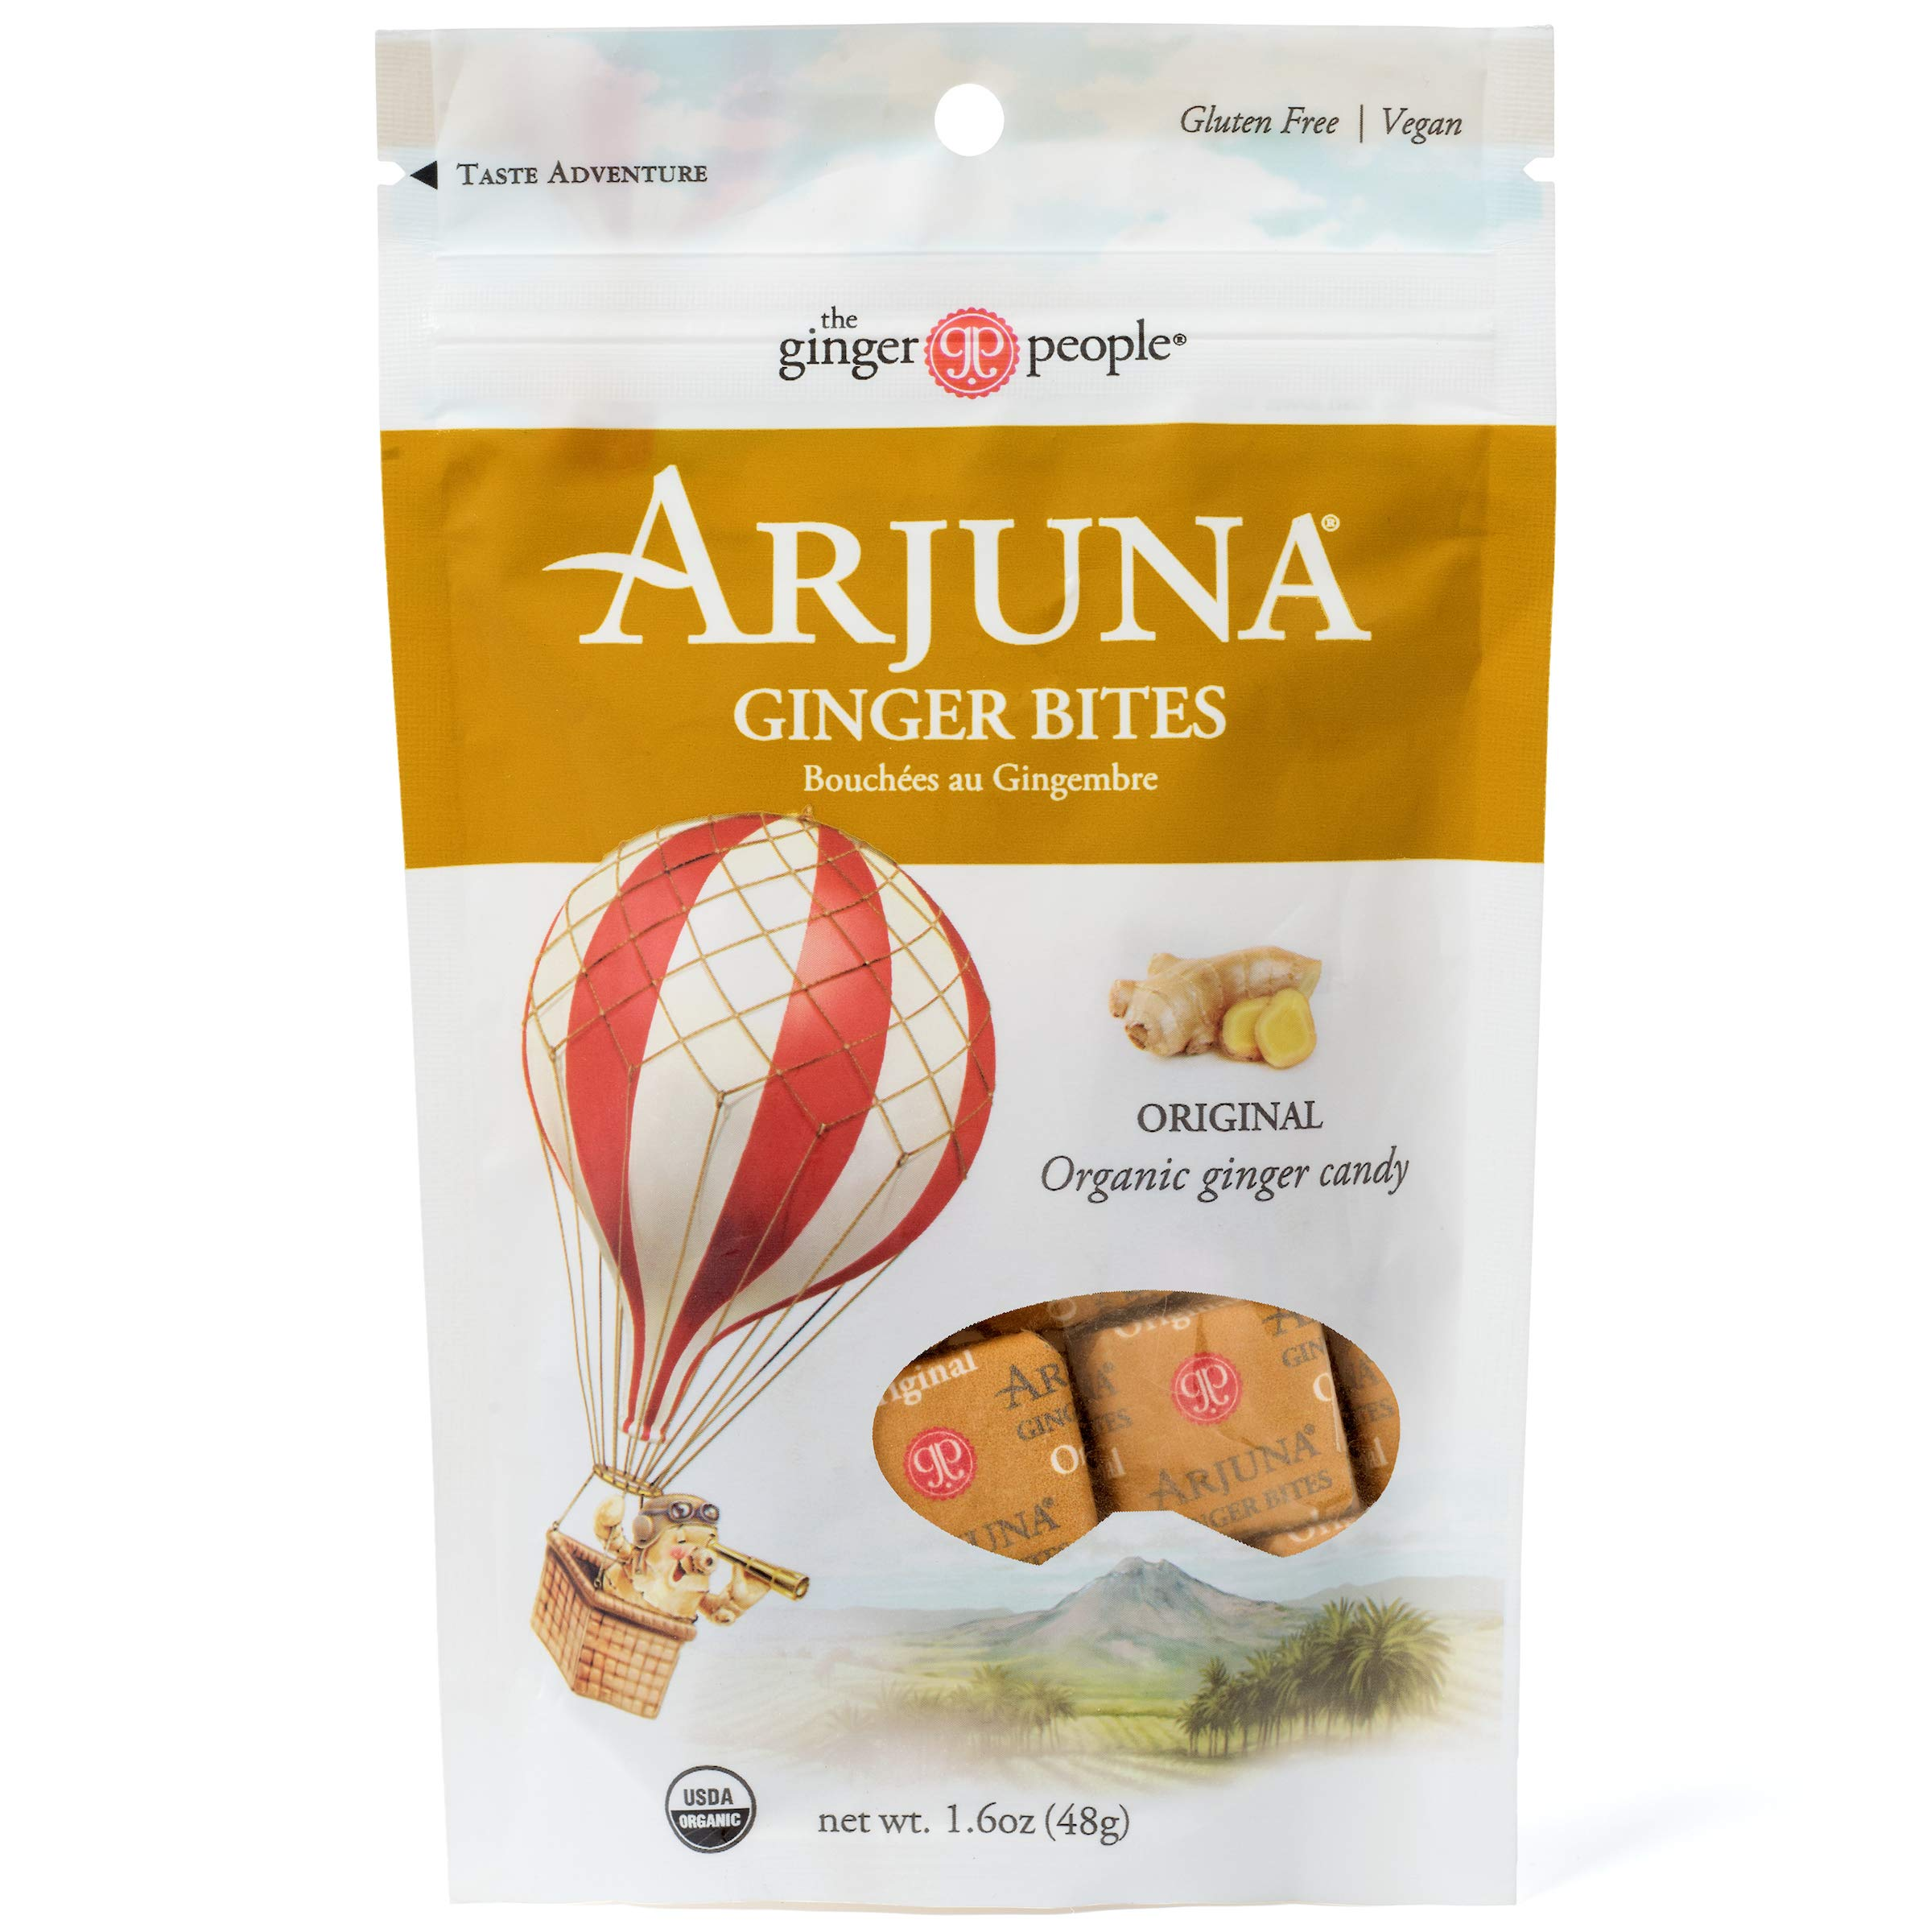 The Ginger People Organic Arjuna Ginger Bites, 1.6 Ounce (Pack of 12) by The Ginger People